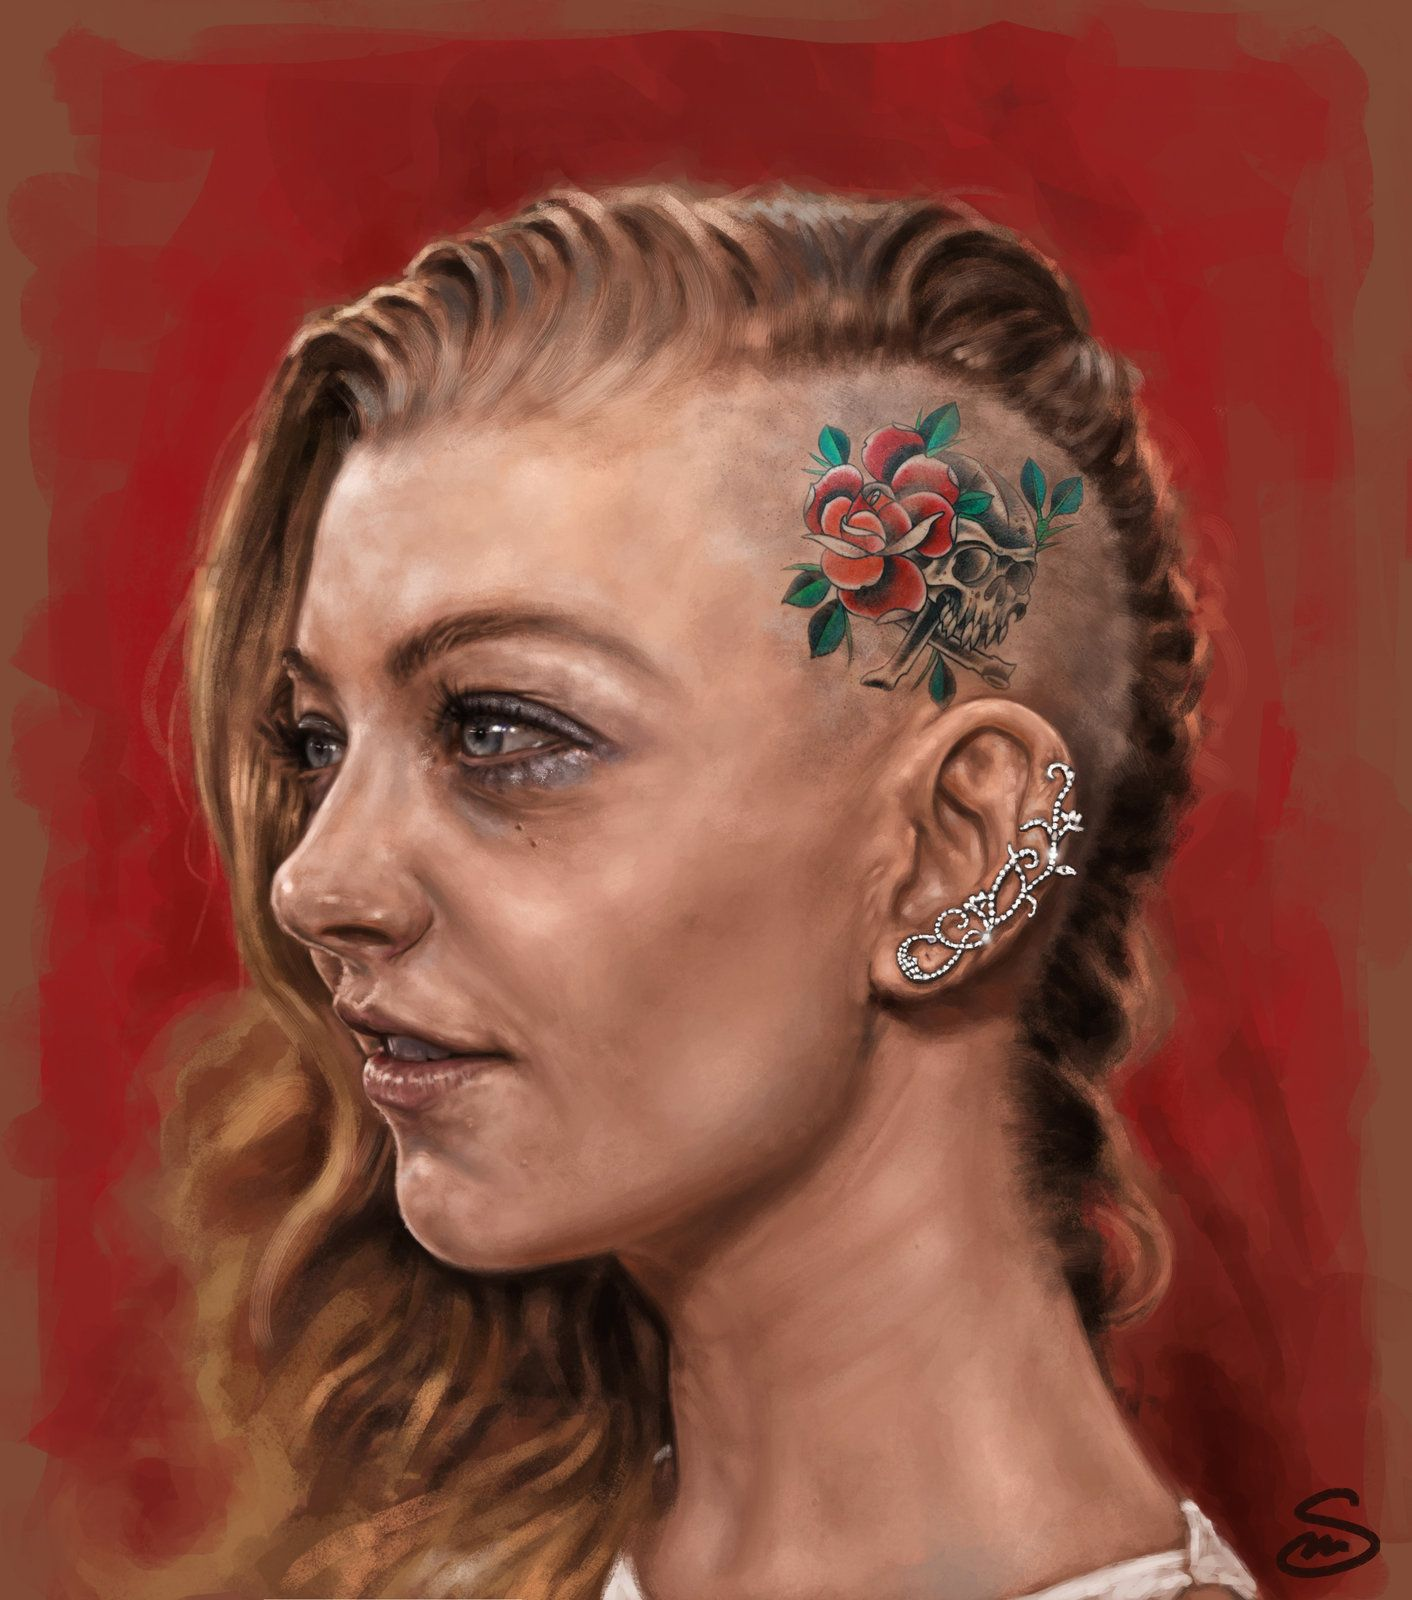 Personal portrait of Natalie Dormer, Mirko Serino on ArtStation at http://www.artstation.com/artwork/personal-portrait-of-natalie-dormer